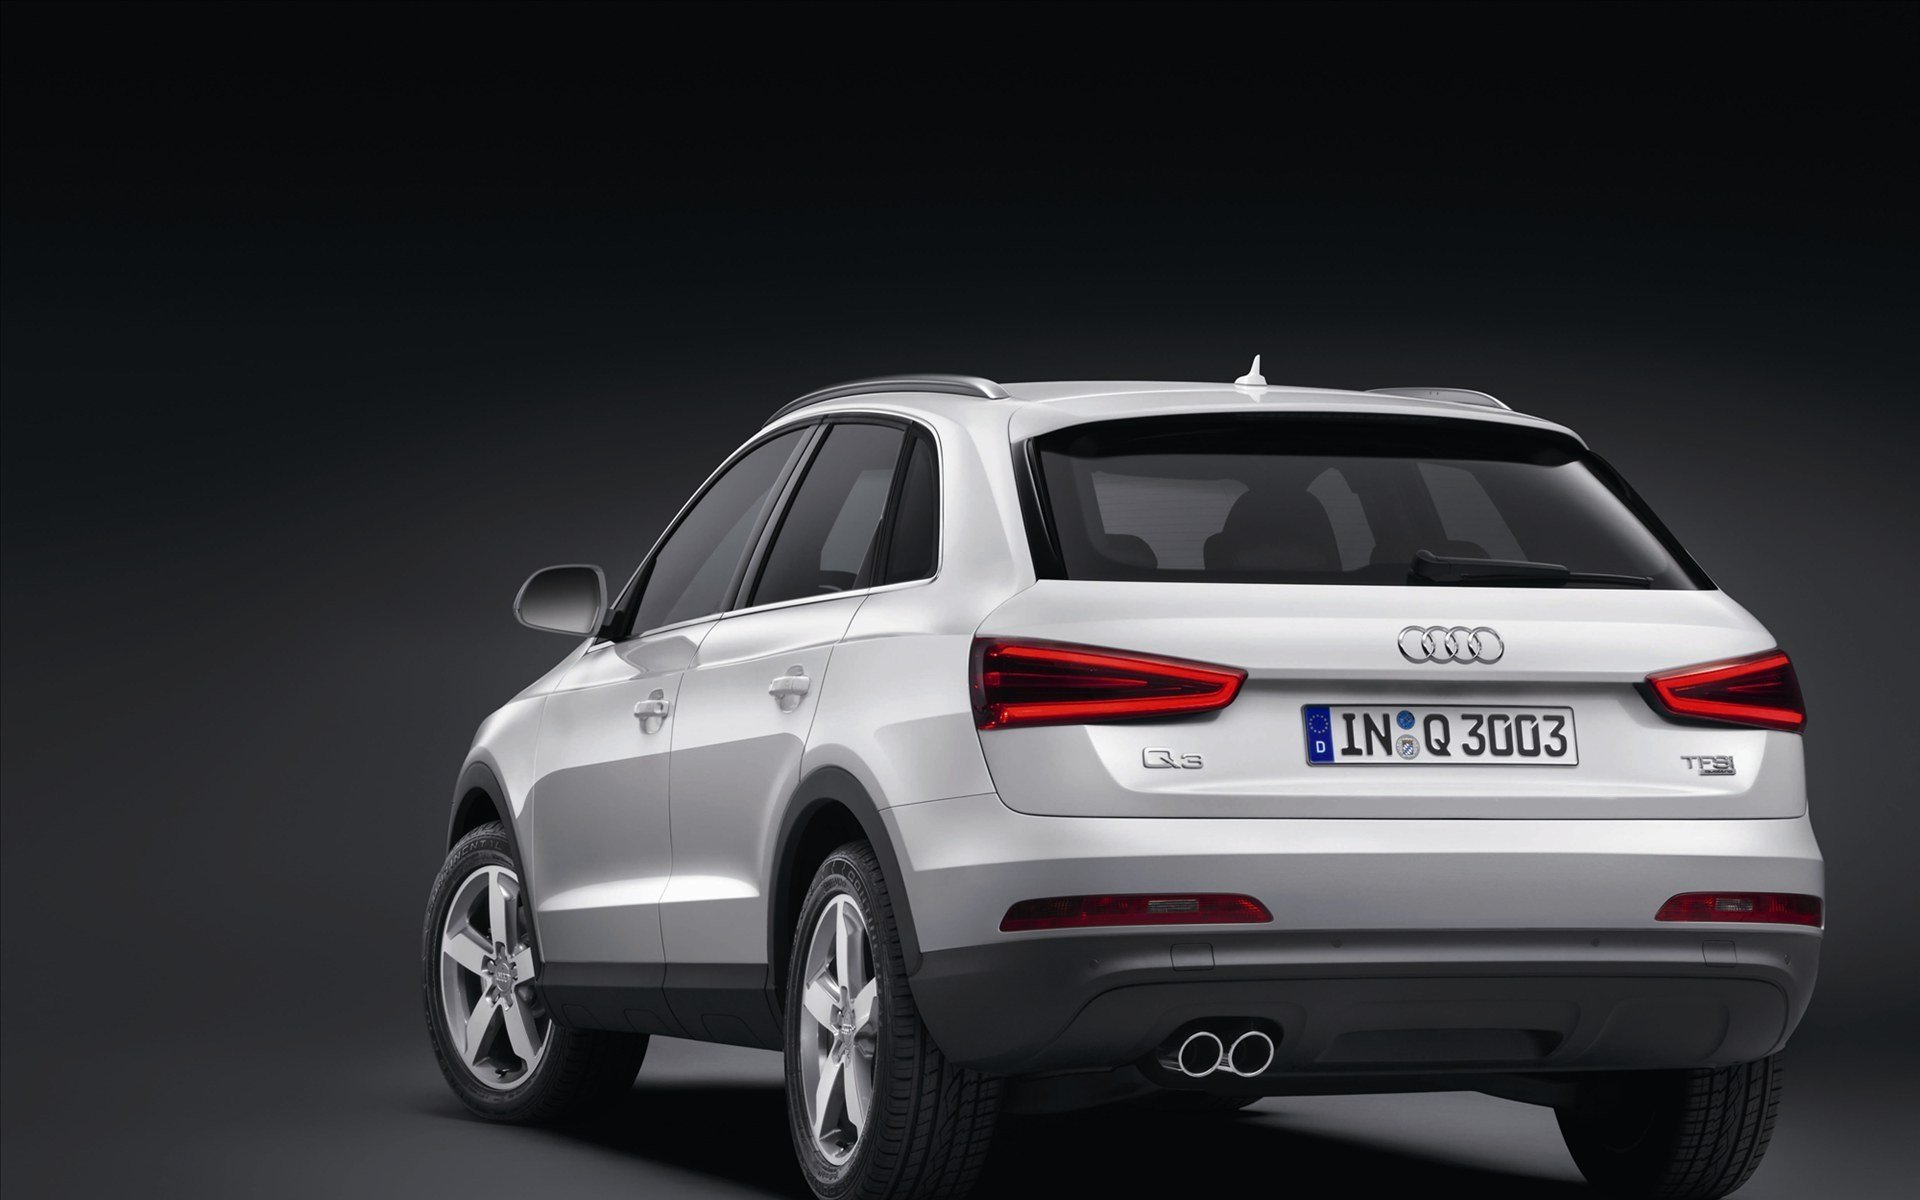 Latest 2012 Audi Q3 2 Wallpaper Hd Car Wallpapers Id 1977 Free Download